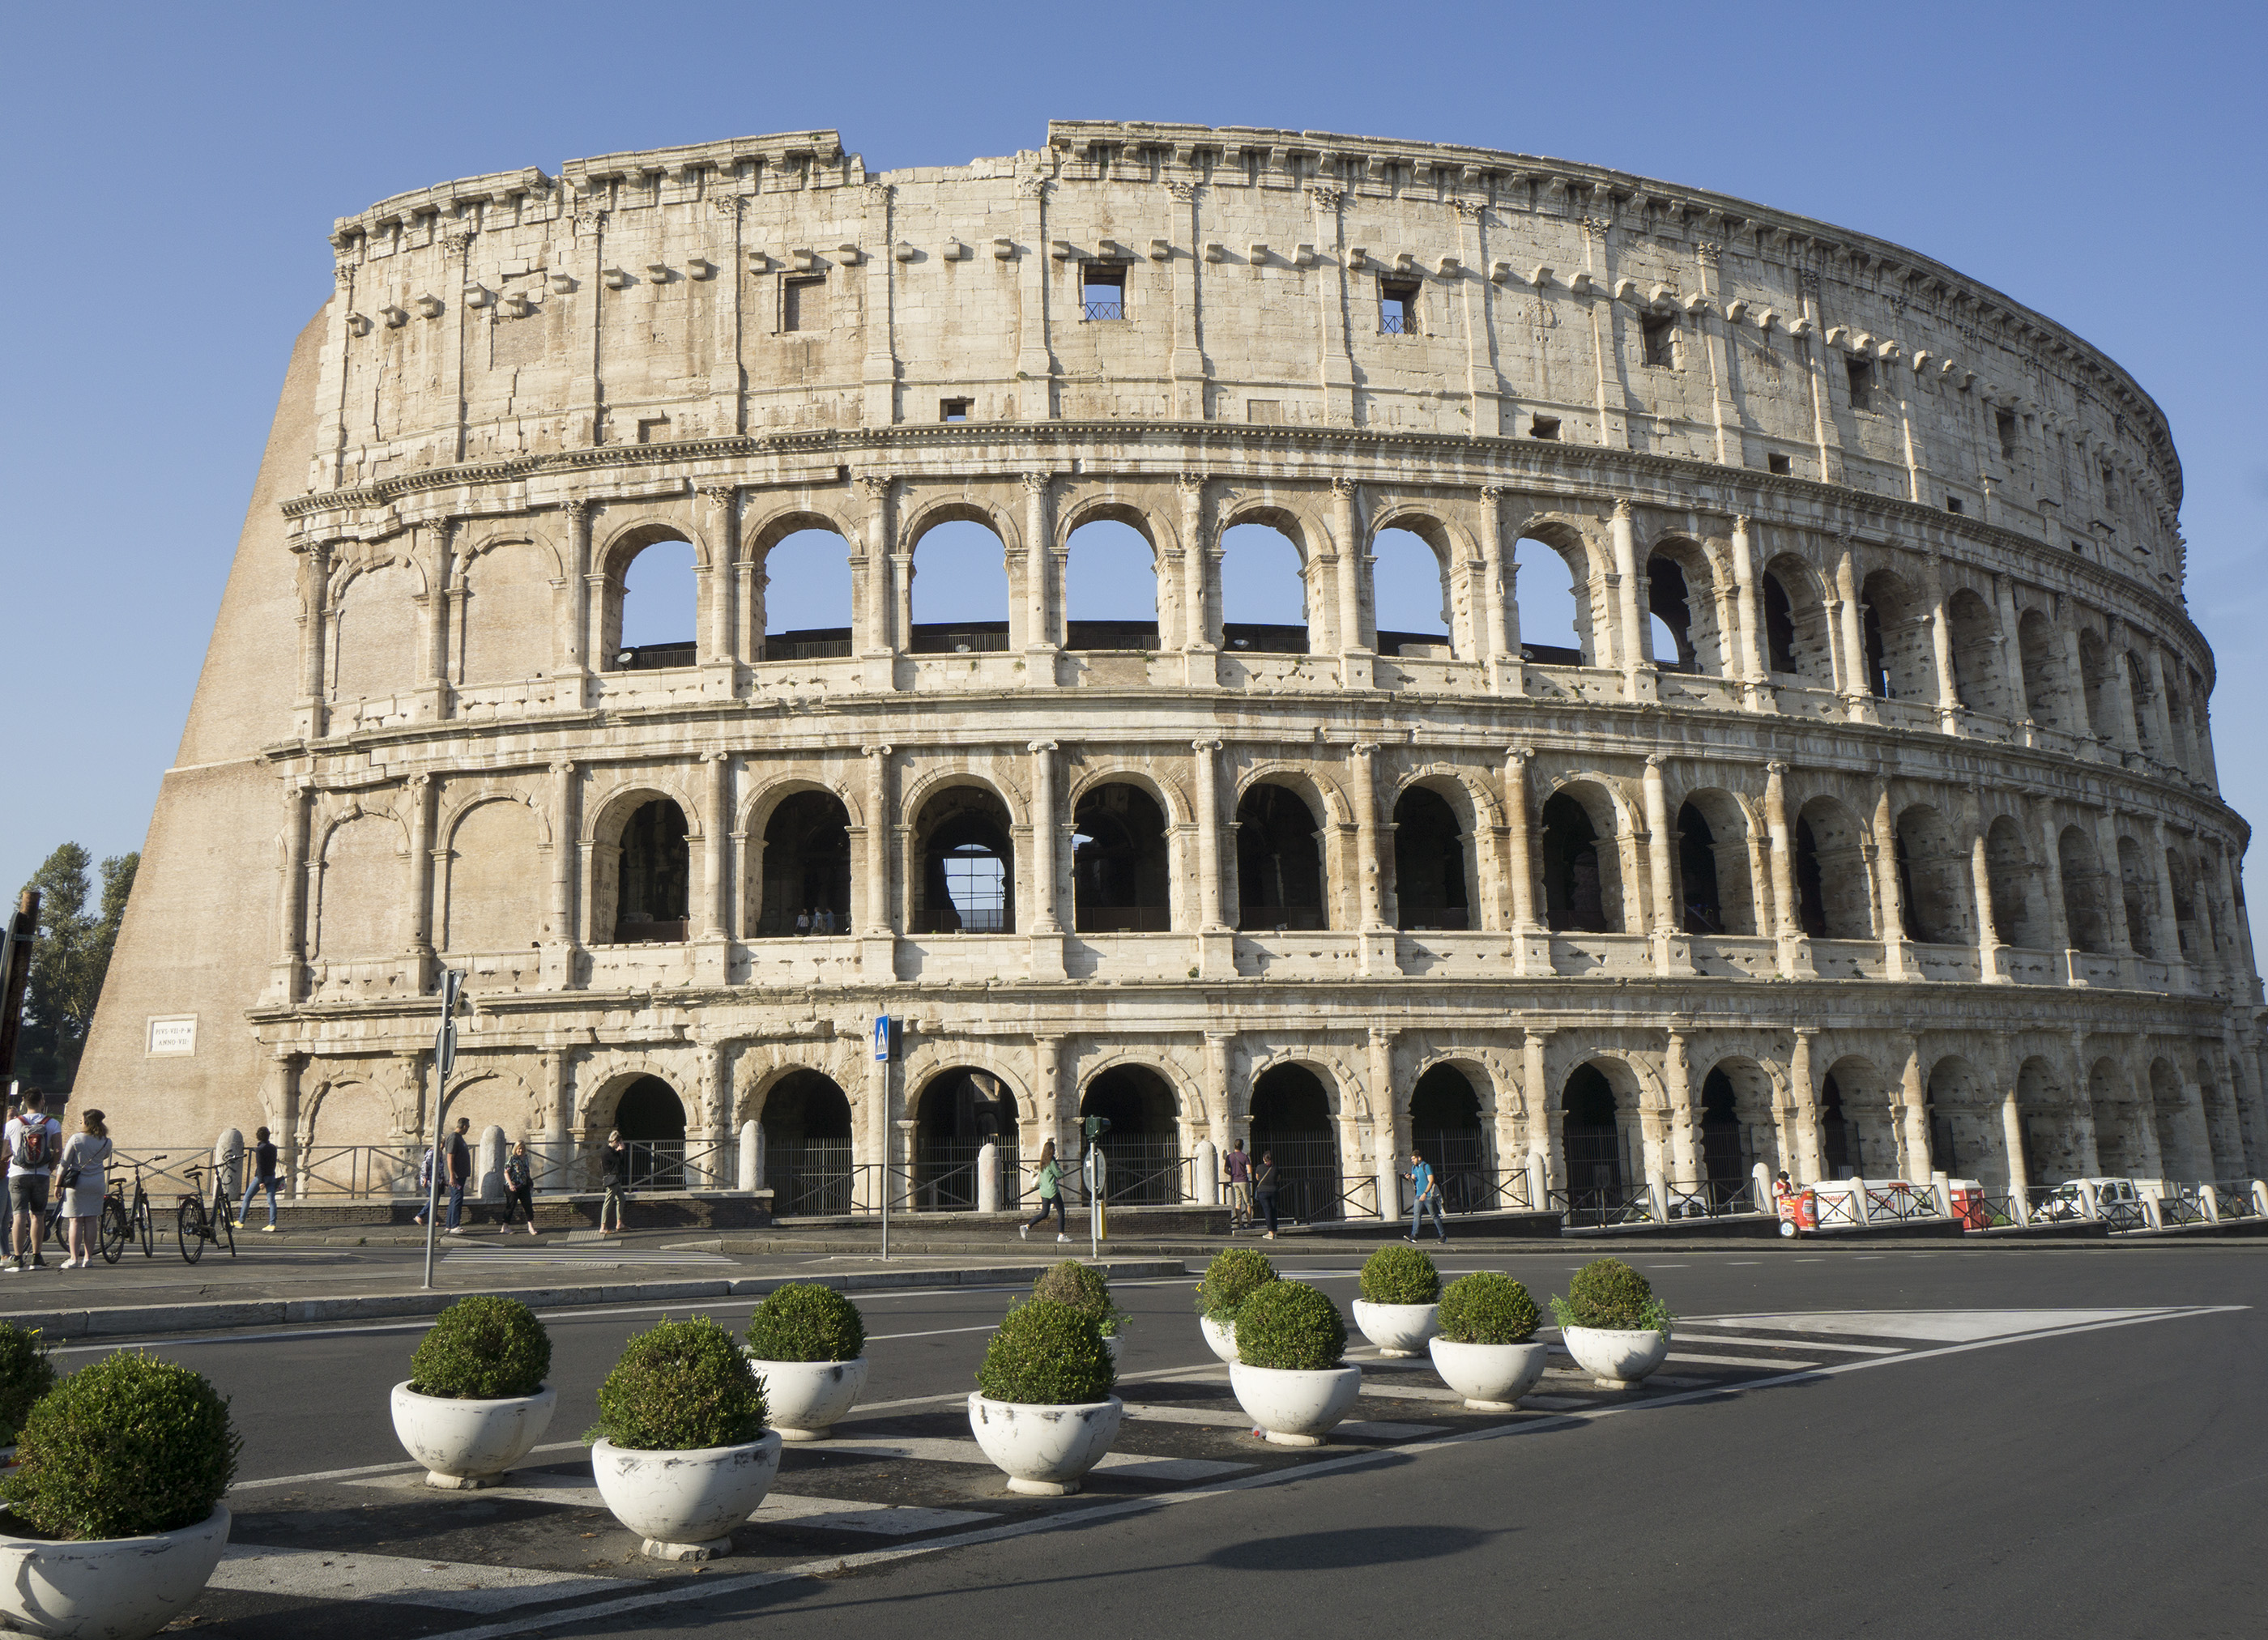 Buy Colosseum tickets on day